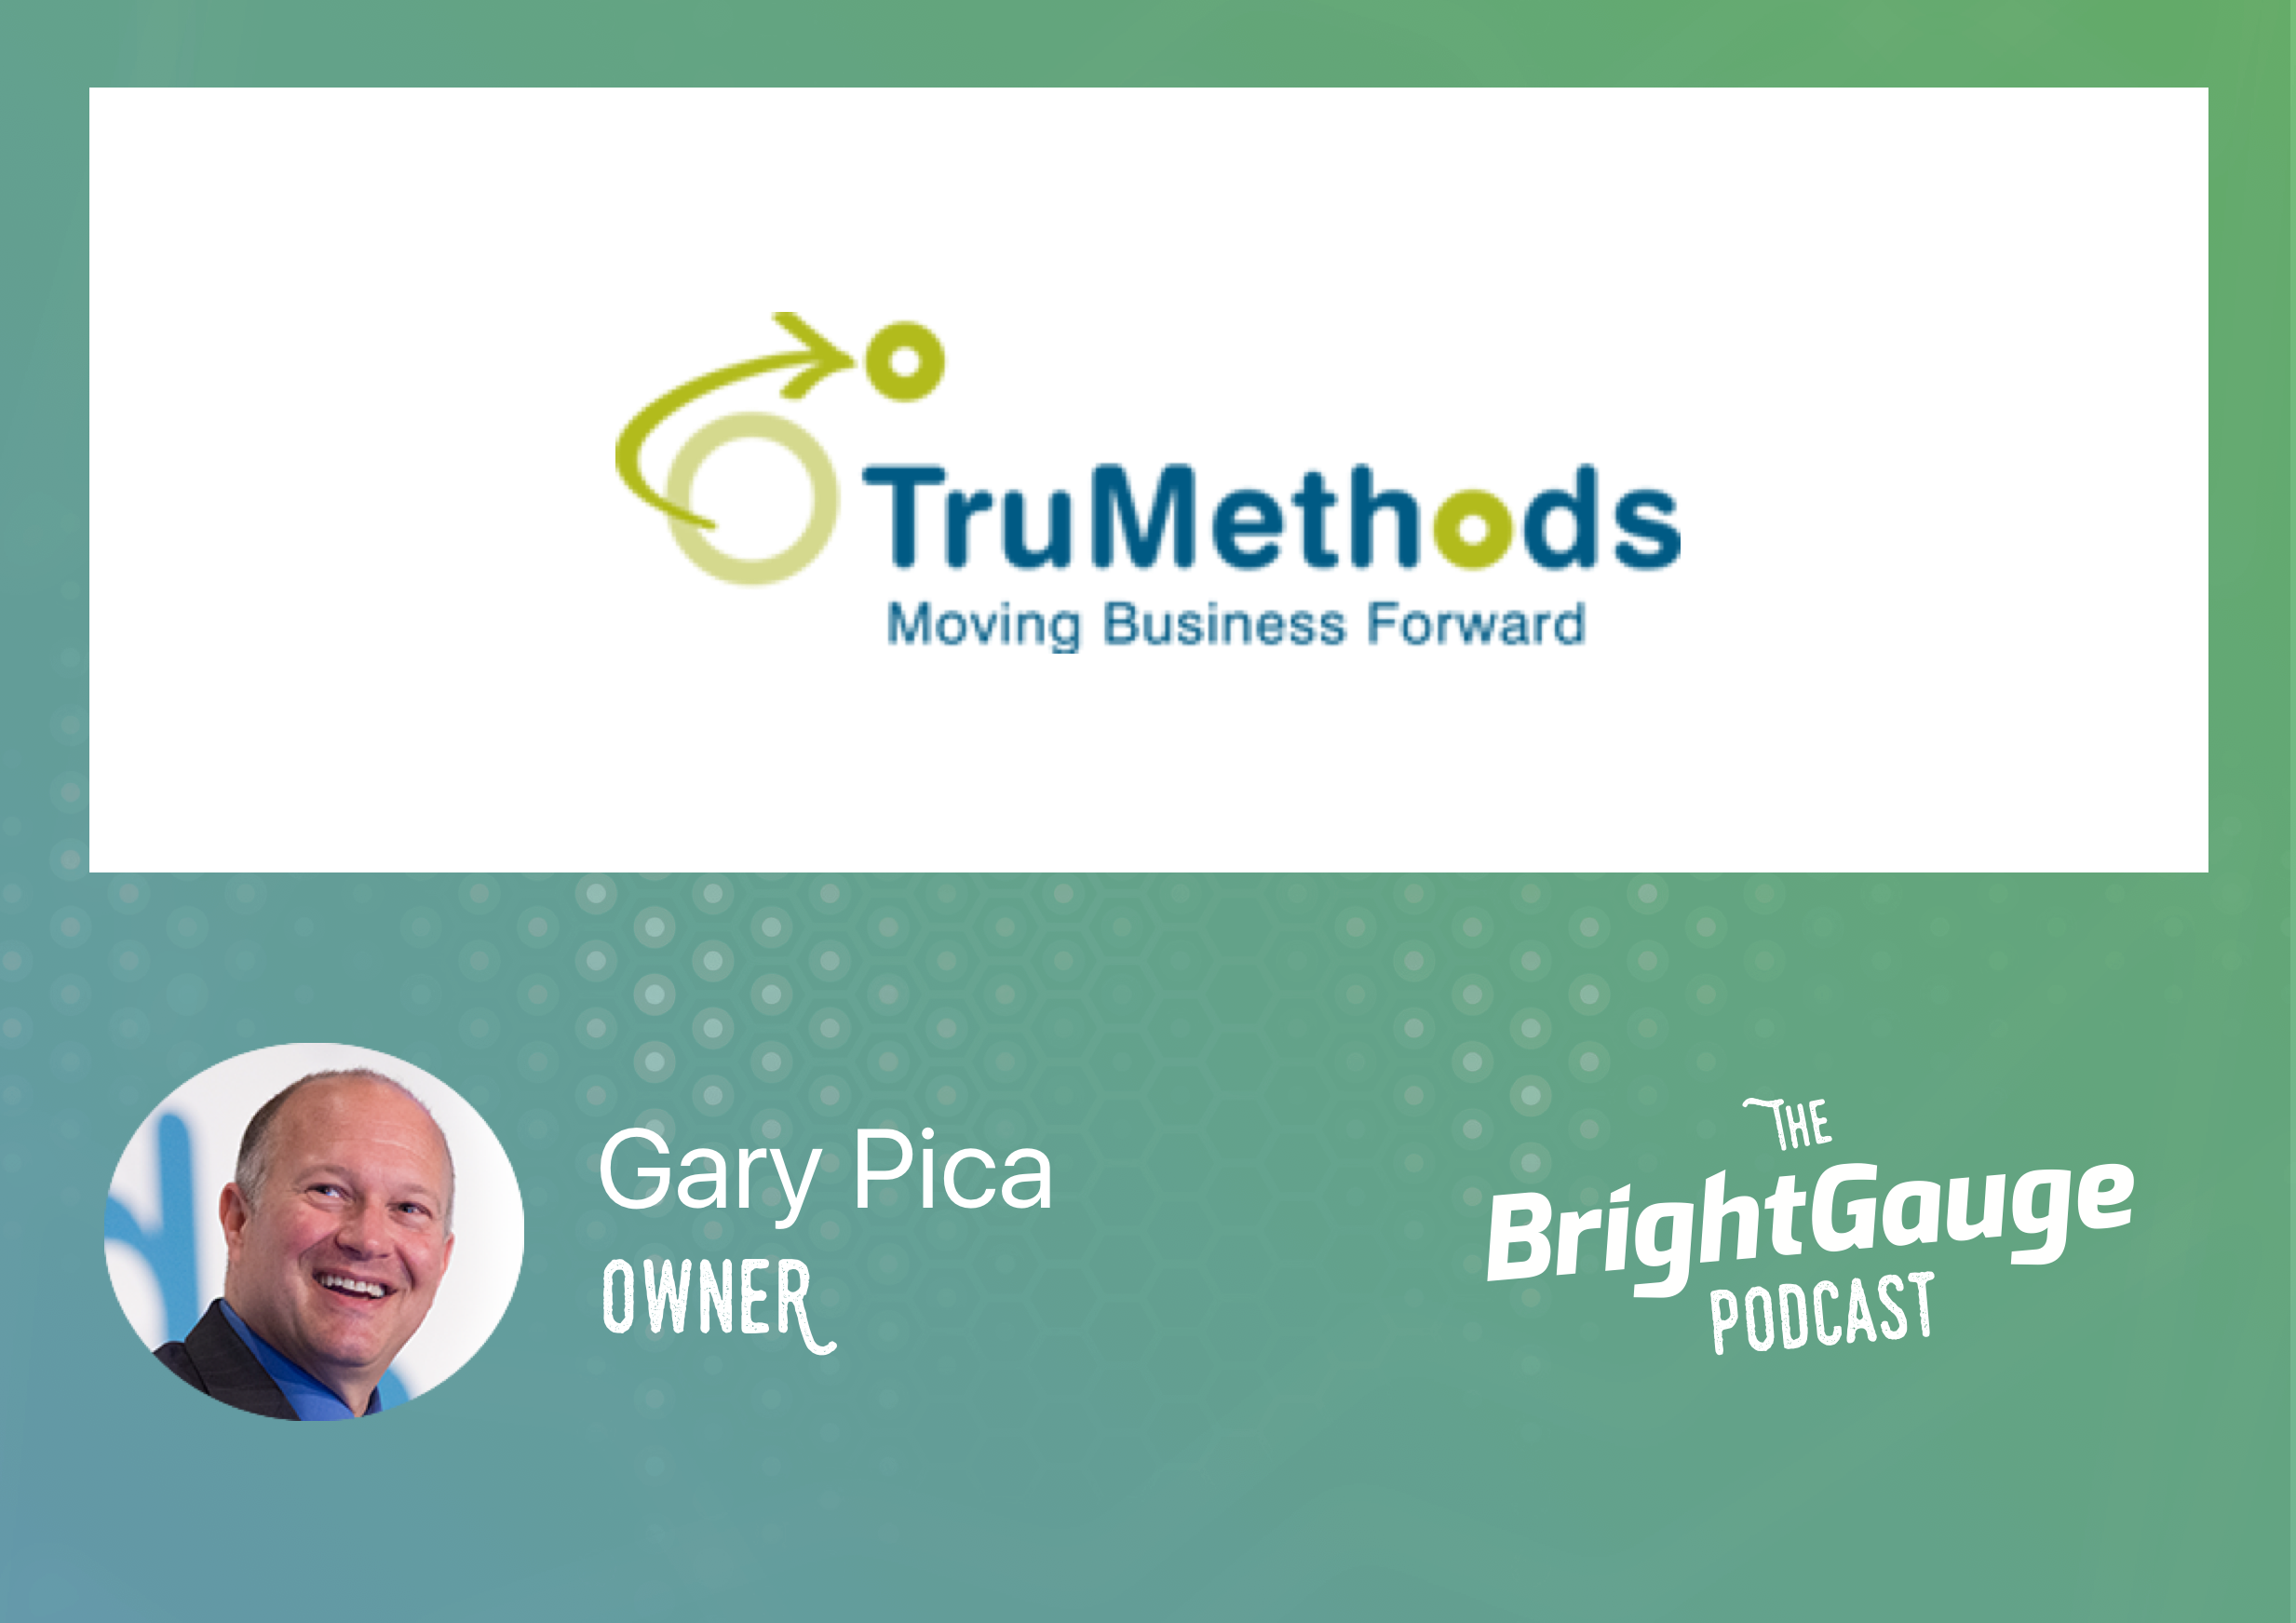 [Podcast] Insights from MSP Coach and Expert, Gary Pica